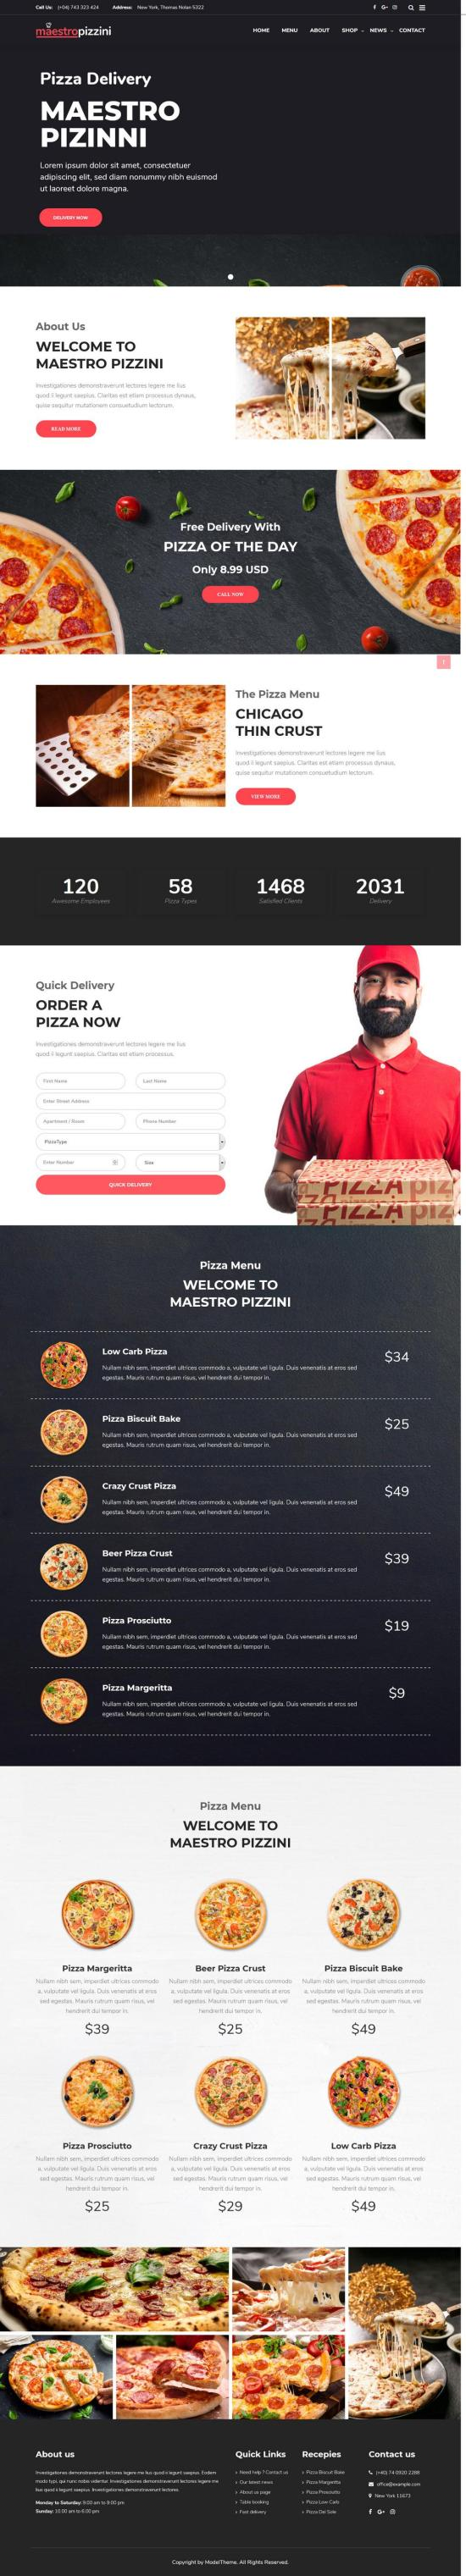 maestropizzini wordpress theme 01 - MaestroPizzini WordPress Theme